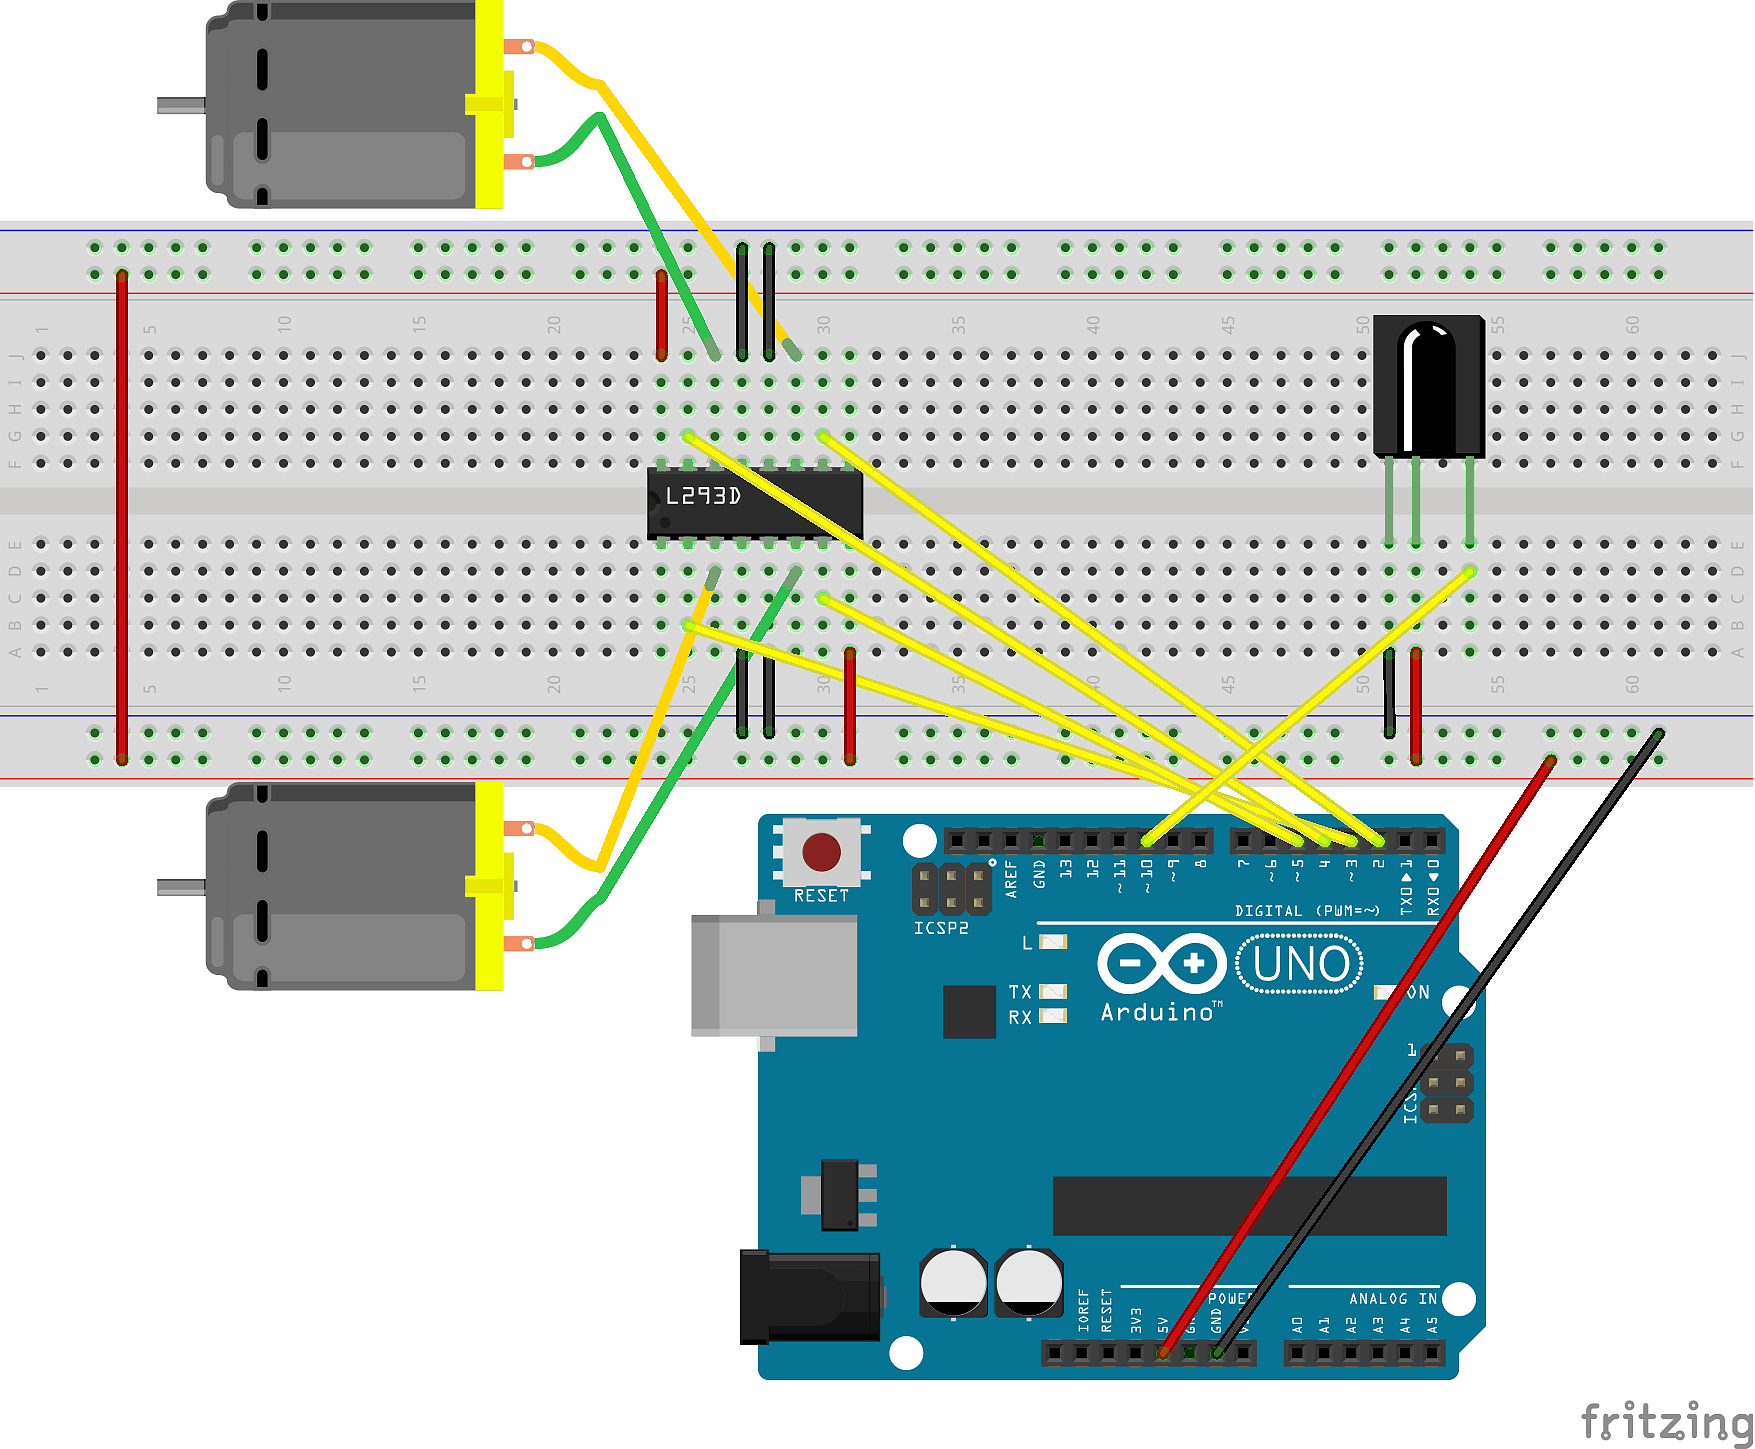 Strap A Robot To Your Face Expressions Are Now Controlled By How Build Electronic Candle Blow Out Schematic Step 2 Install The Irlib Library Into Arduino Environment Well Be Using Interact With Vs838 Or Equivalent Ir Receiver